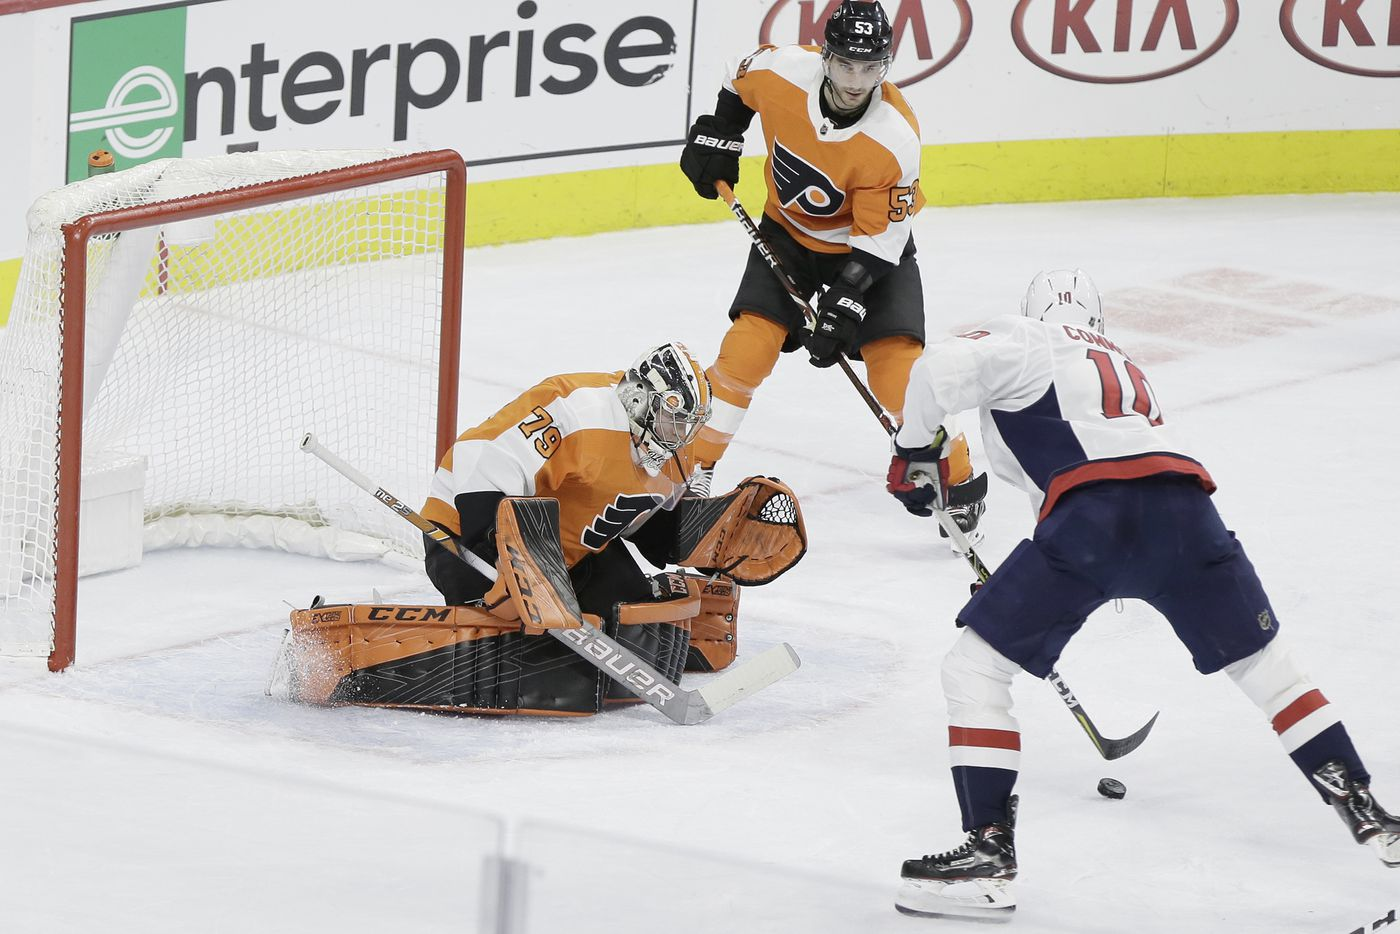 c7b3941c1d7 Flyers Carter Hart makes a save in the 2nd period of the Washington Capitals  at Philadelphia